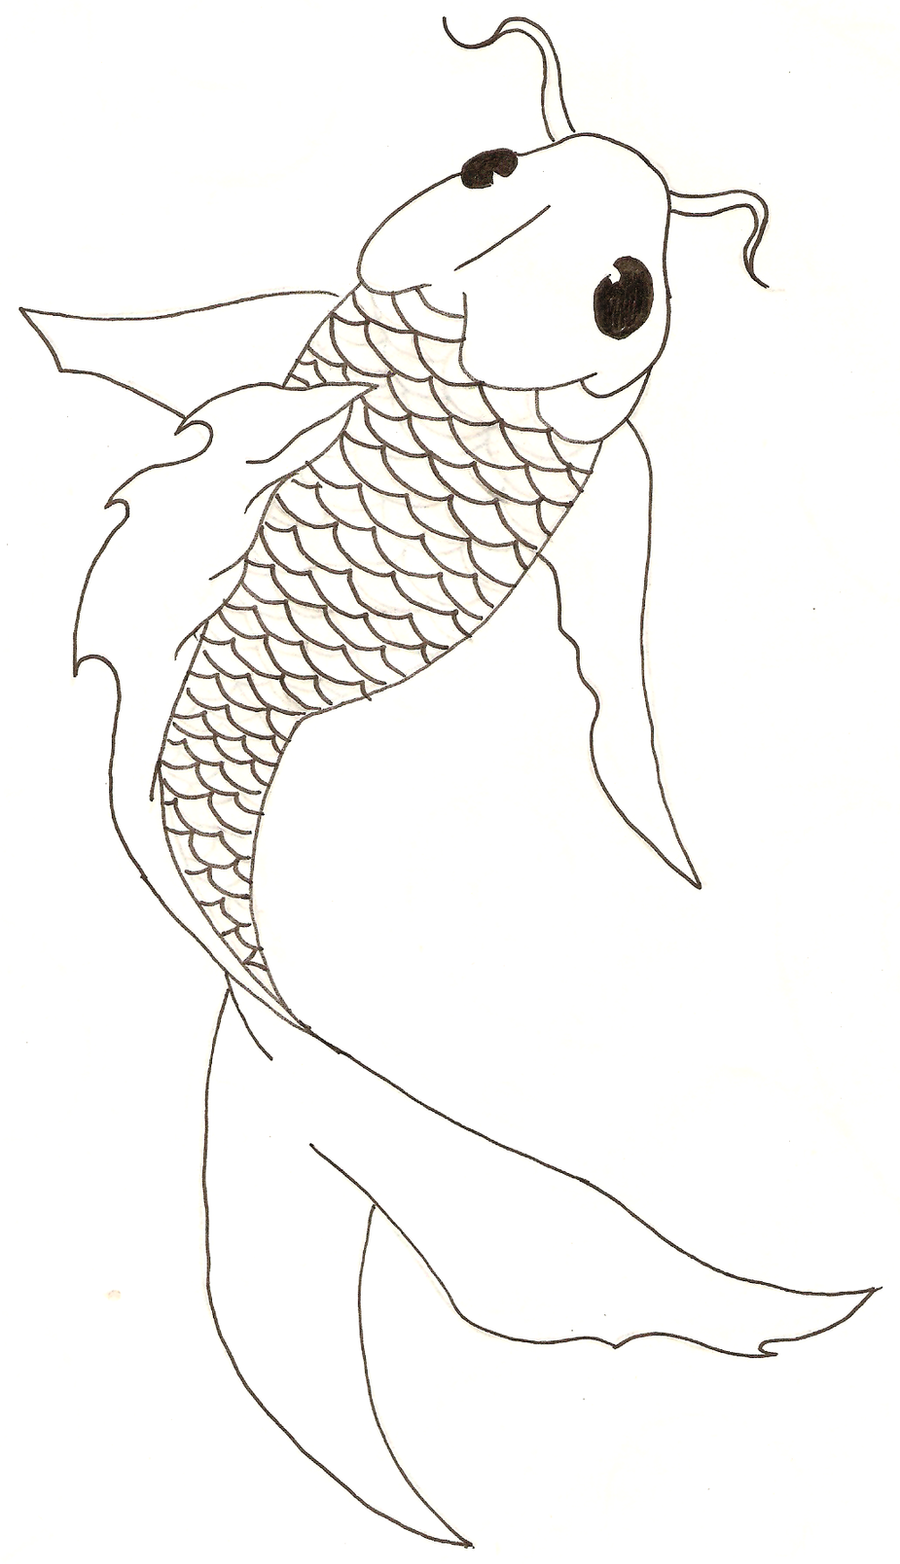 Fishing net coloring page